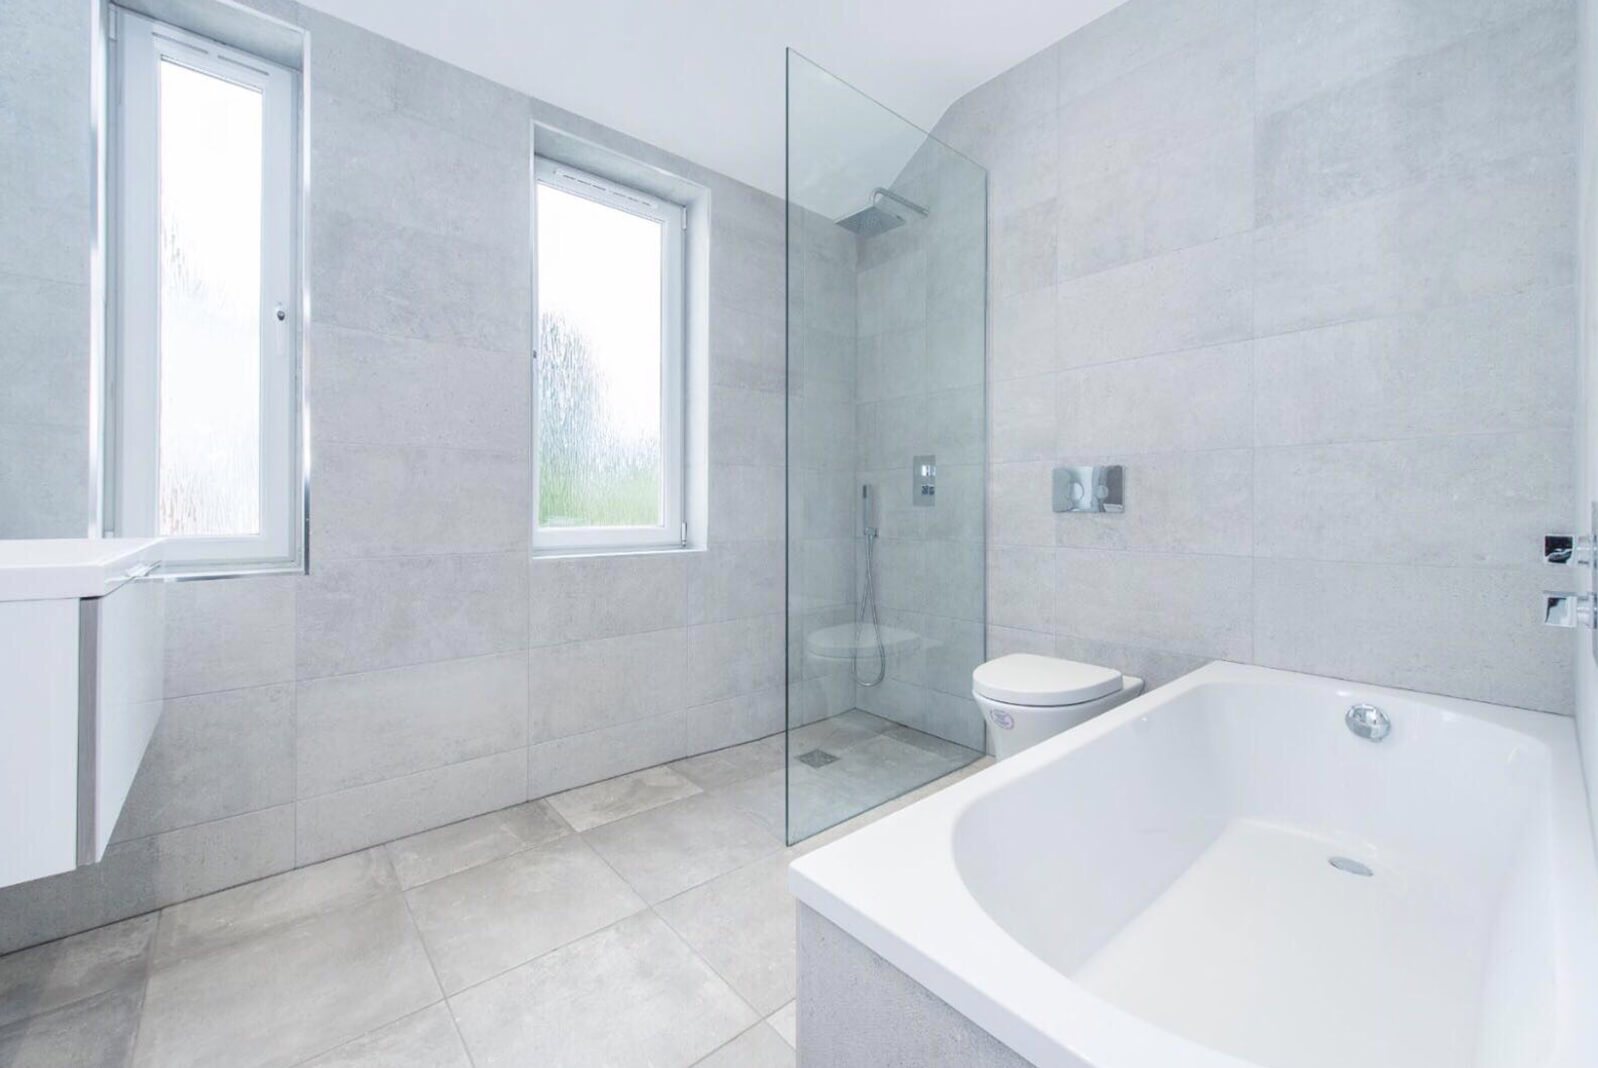 Modern wet room style bathroom with walk in shower. White bathroom units including large bath. Fully tiled walls with two single windows. Tiled floor.